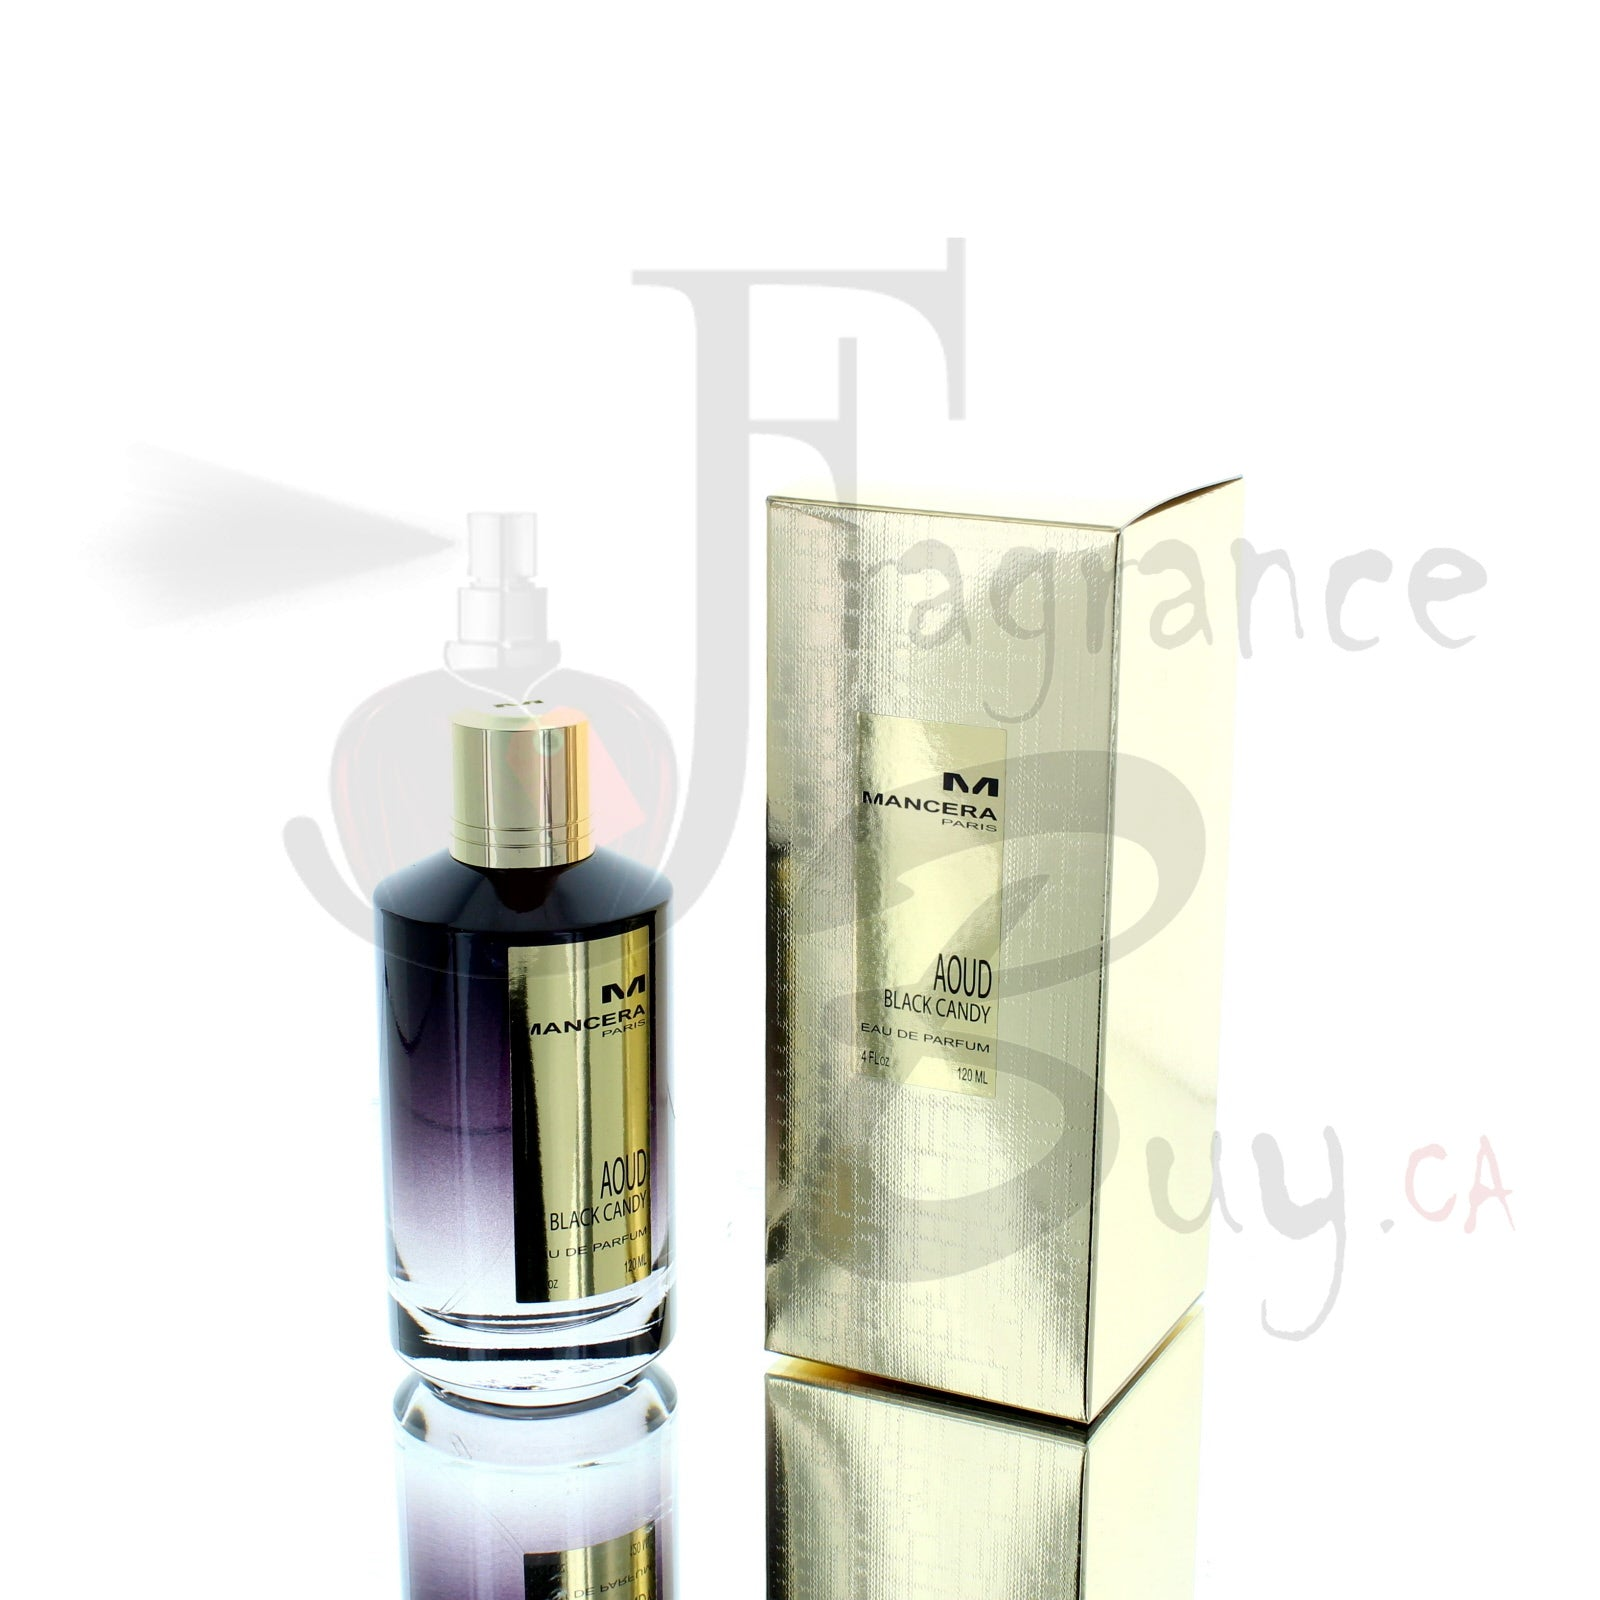 Mancera Aoud Black Candy For Man/Woman